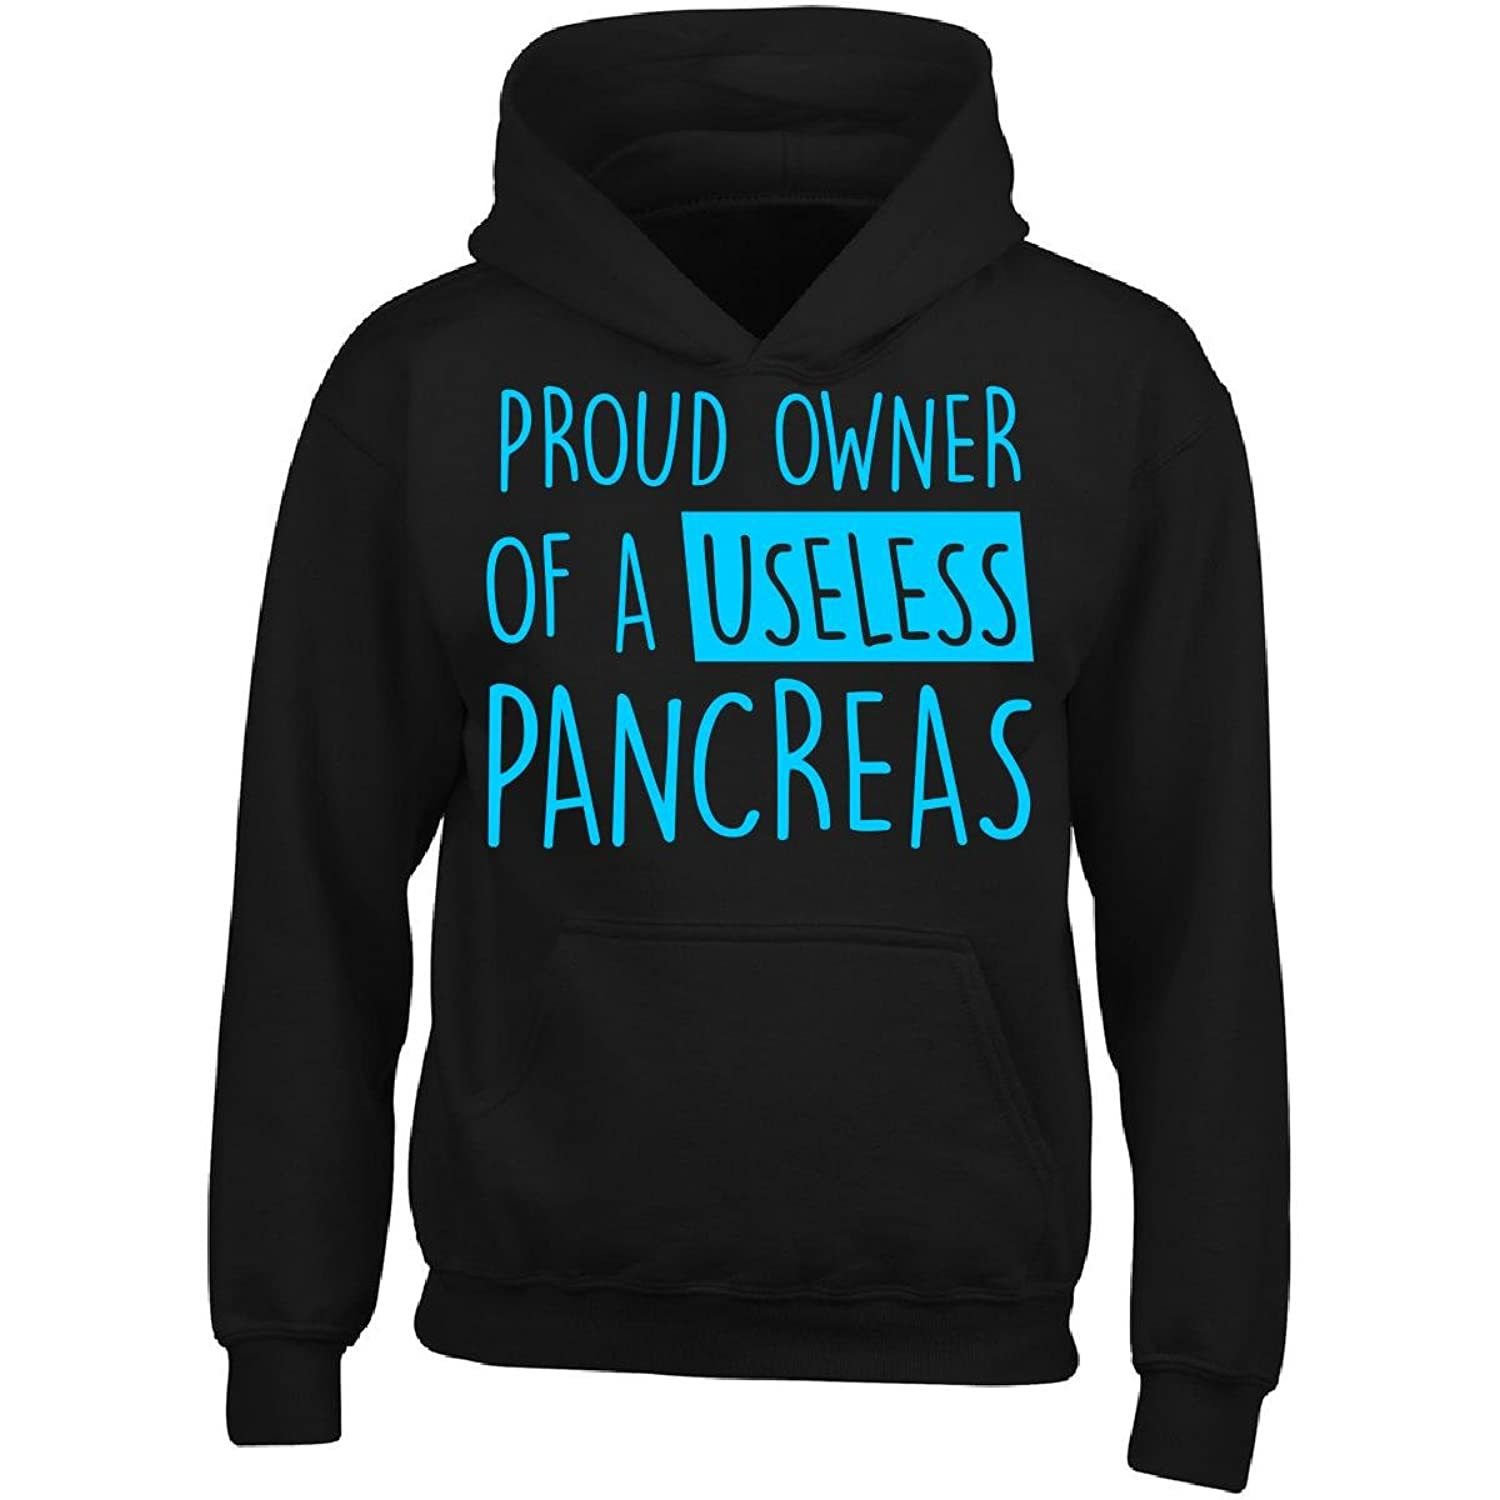 4a9cd98e51f Proud Owner Of A Useless Pancreas Diabetes - Adult Hoodie low-cost ...